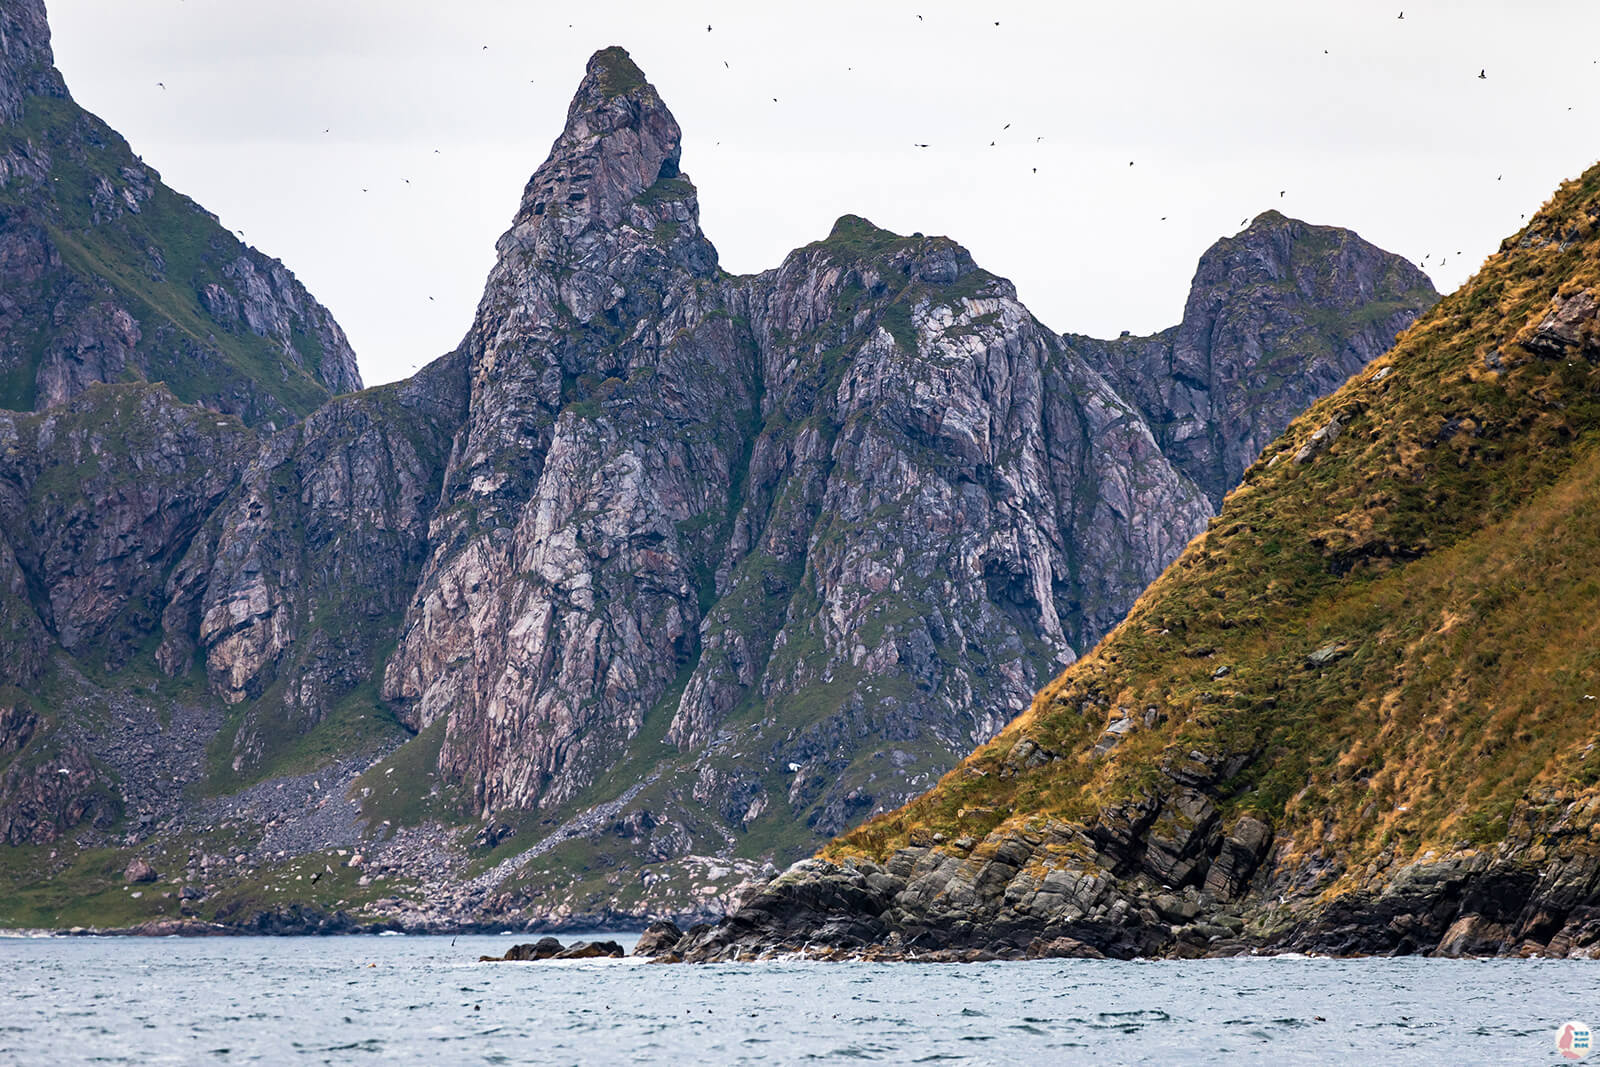 Bleiksøya and Stave cliffs around Måtinden peak, Bleik, Andøya, Northern Norway